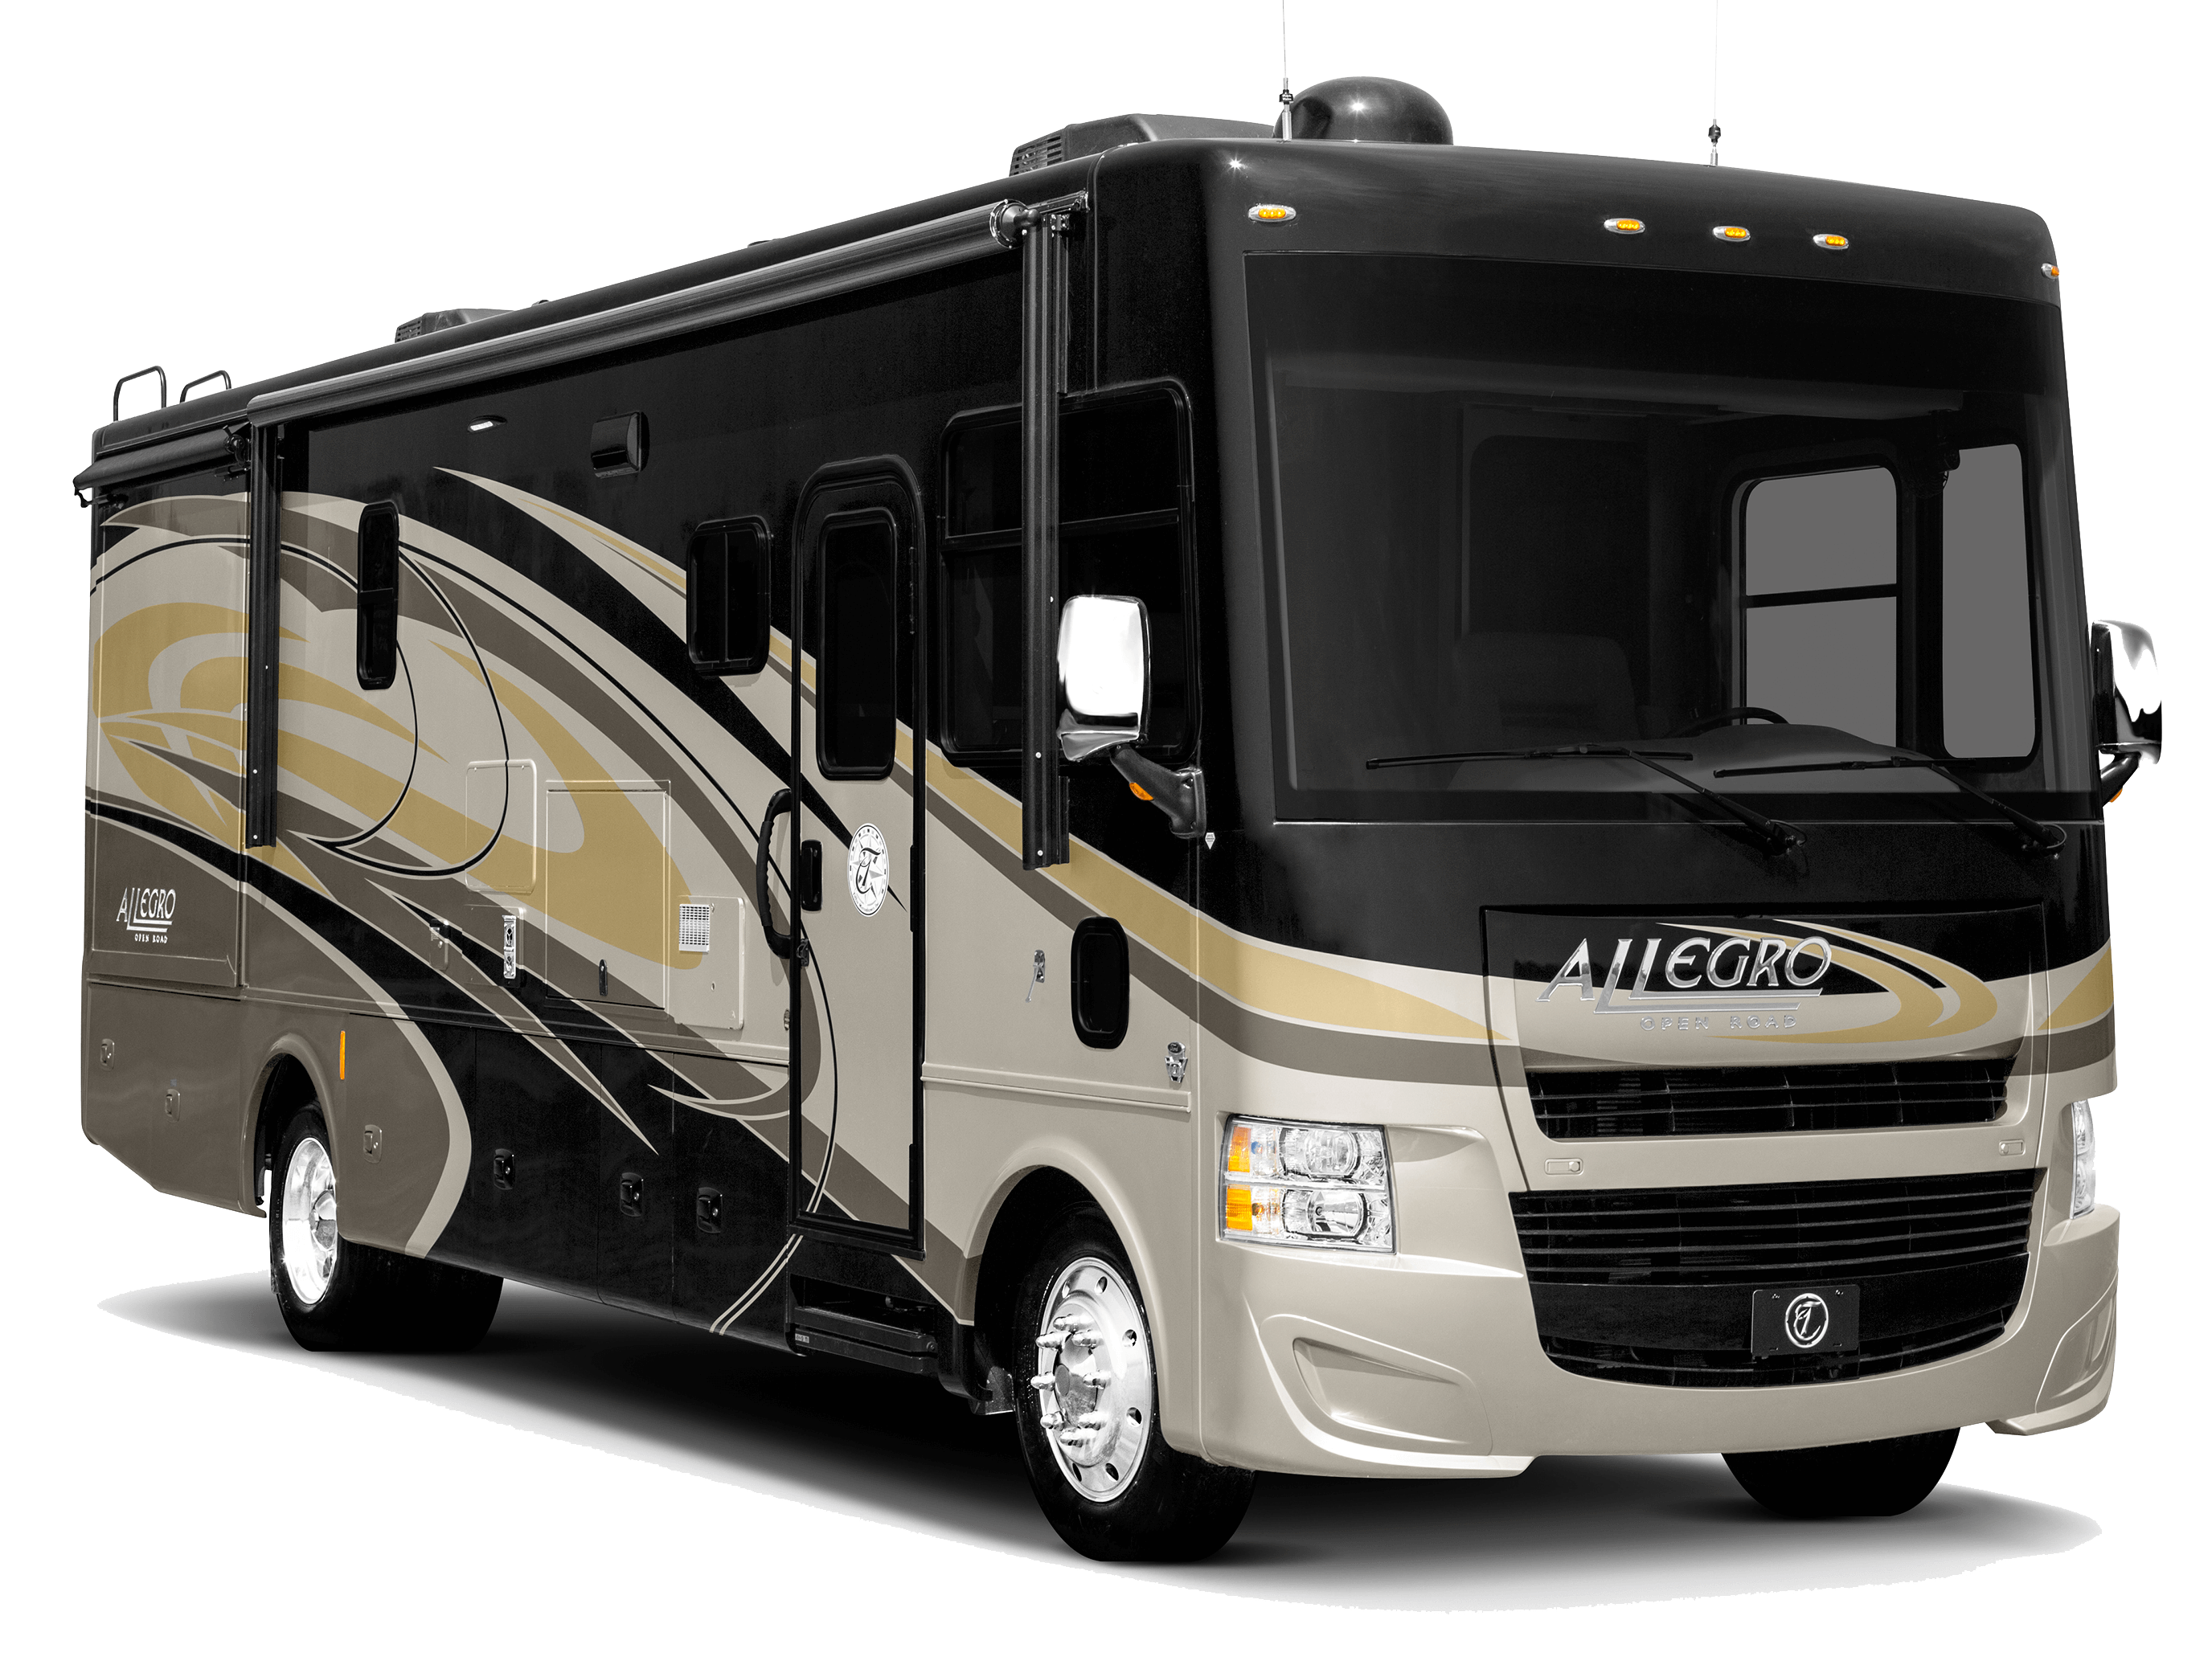 tiffin allegro.pagespeed.ce.BTCGgEjUzL tiffin allegro motorhomes tiffin motorhomes tiffin motorhome wiring diagram at eliteediting.co